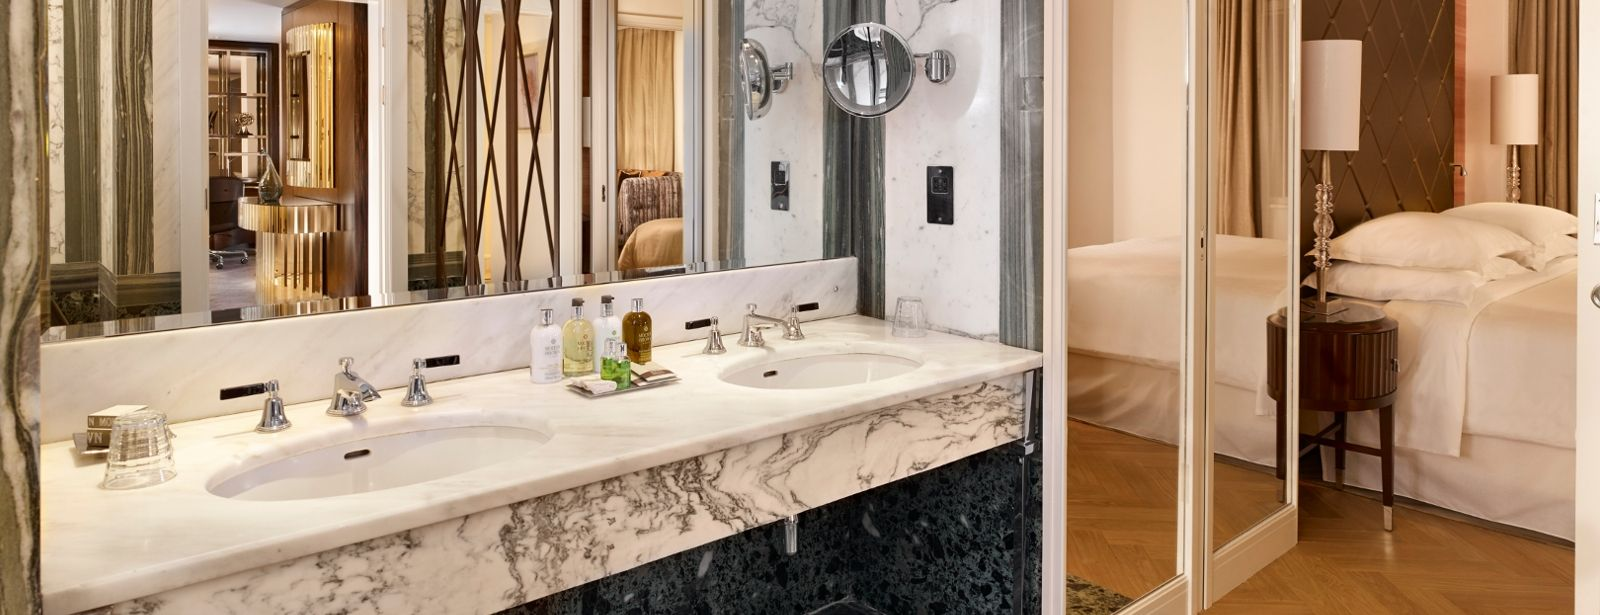 presidential-suite-bathroom-sheraton-grand-park-lane-hotel-london-piccadilly-mayfair